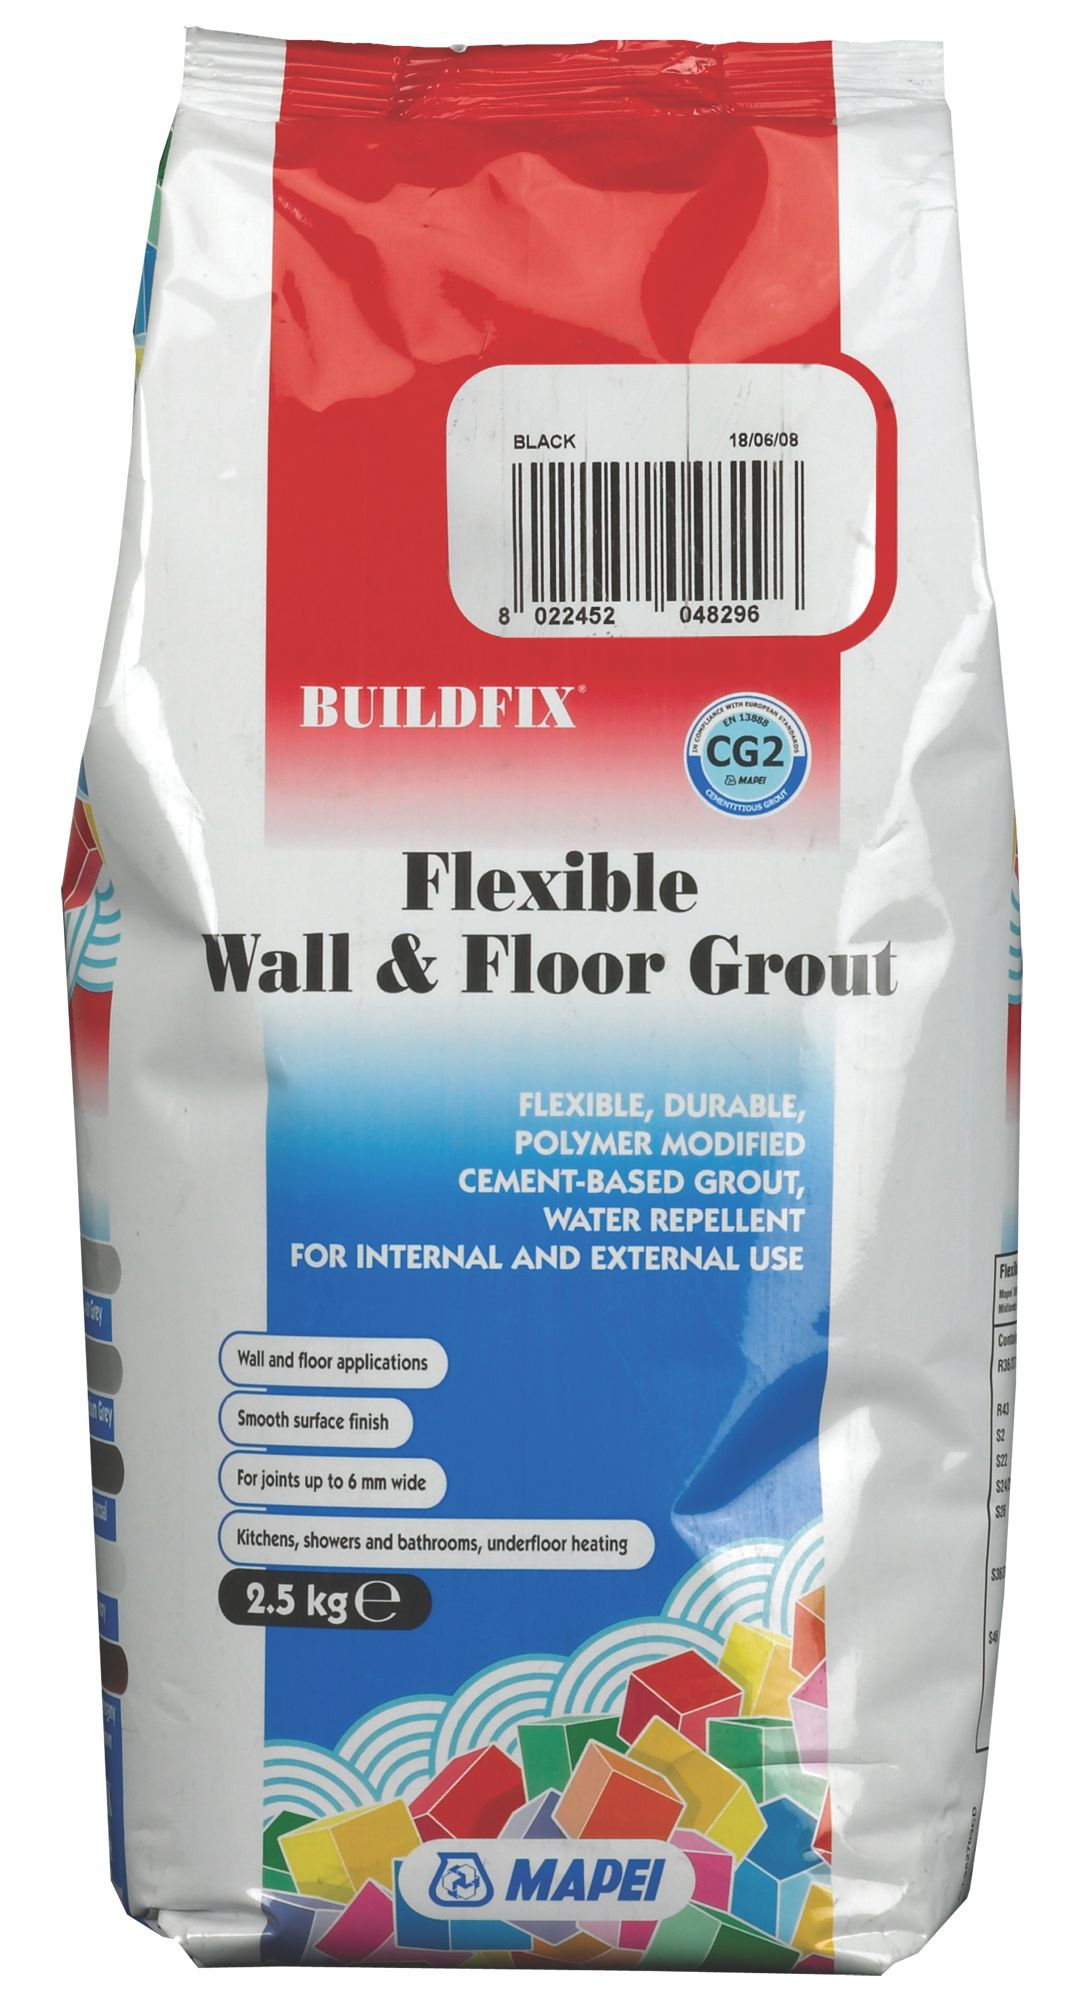 Mapei flexible black wall floor grout w25kg departments mapei flexible black wall floor grout w25kg departments diy at bq dailygadgetfo Choice Image